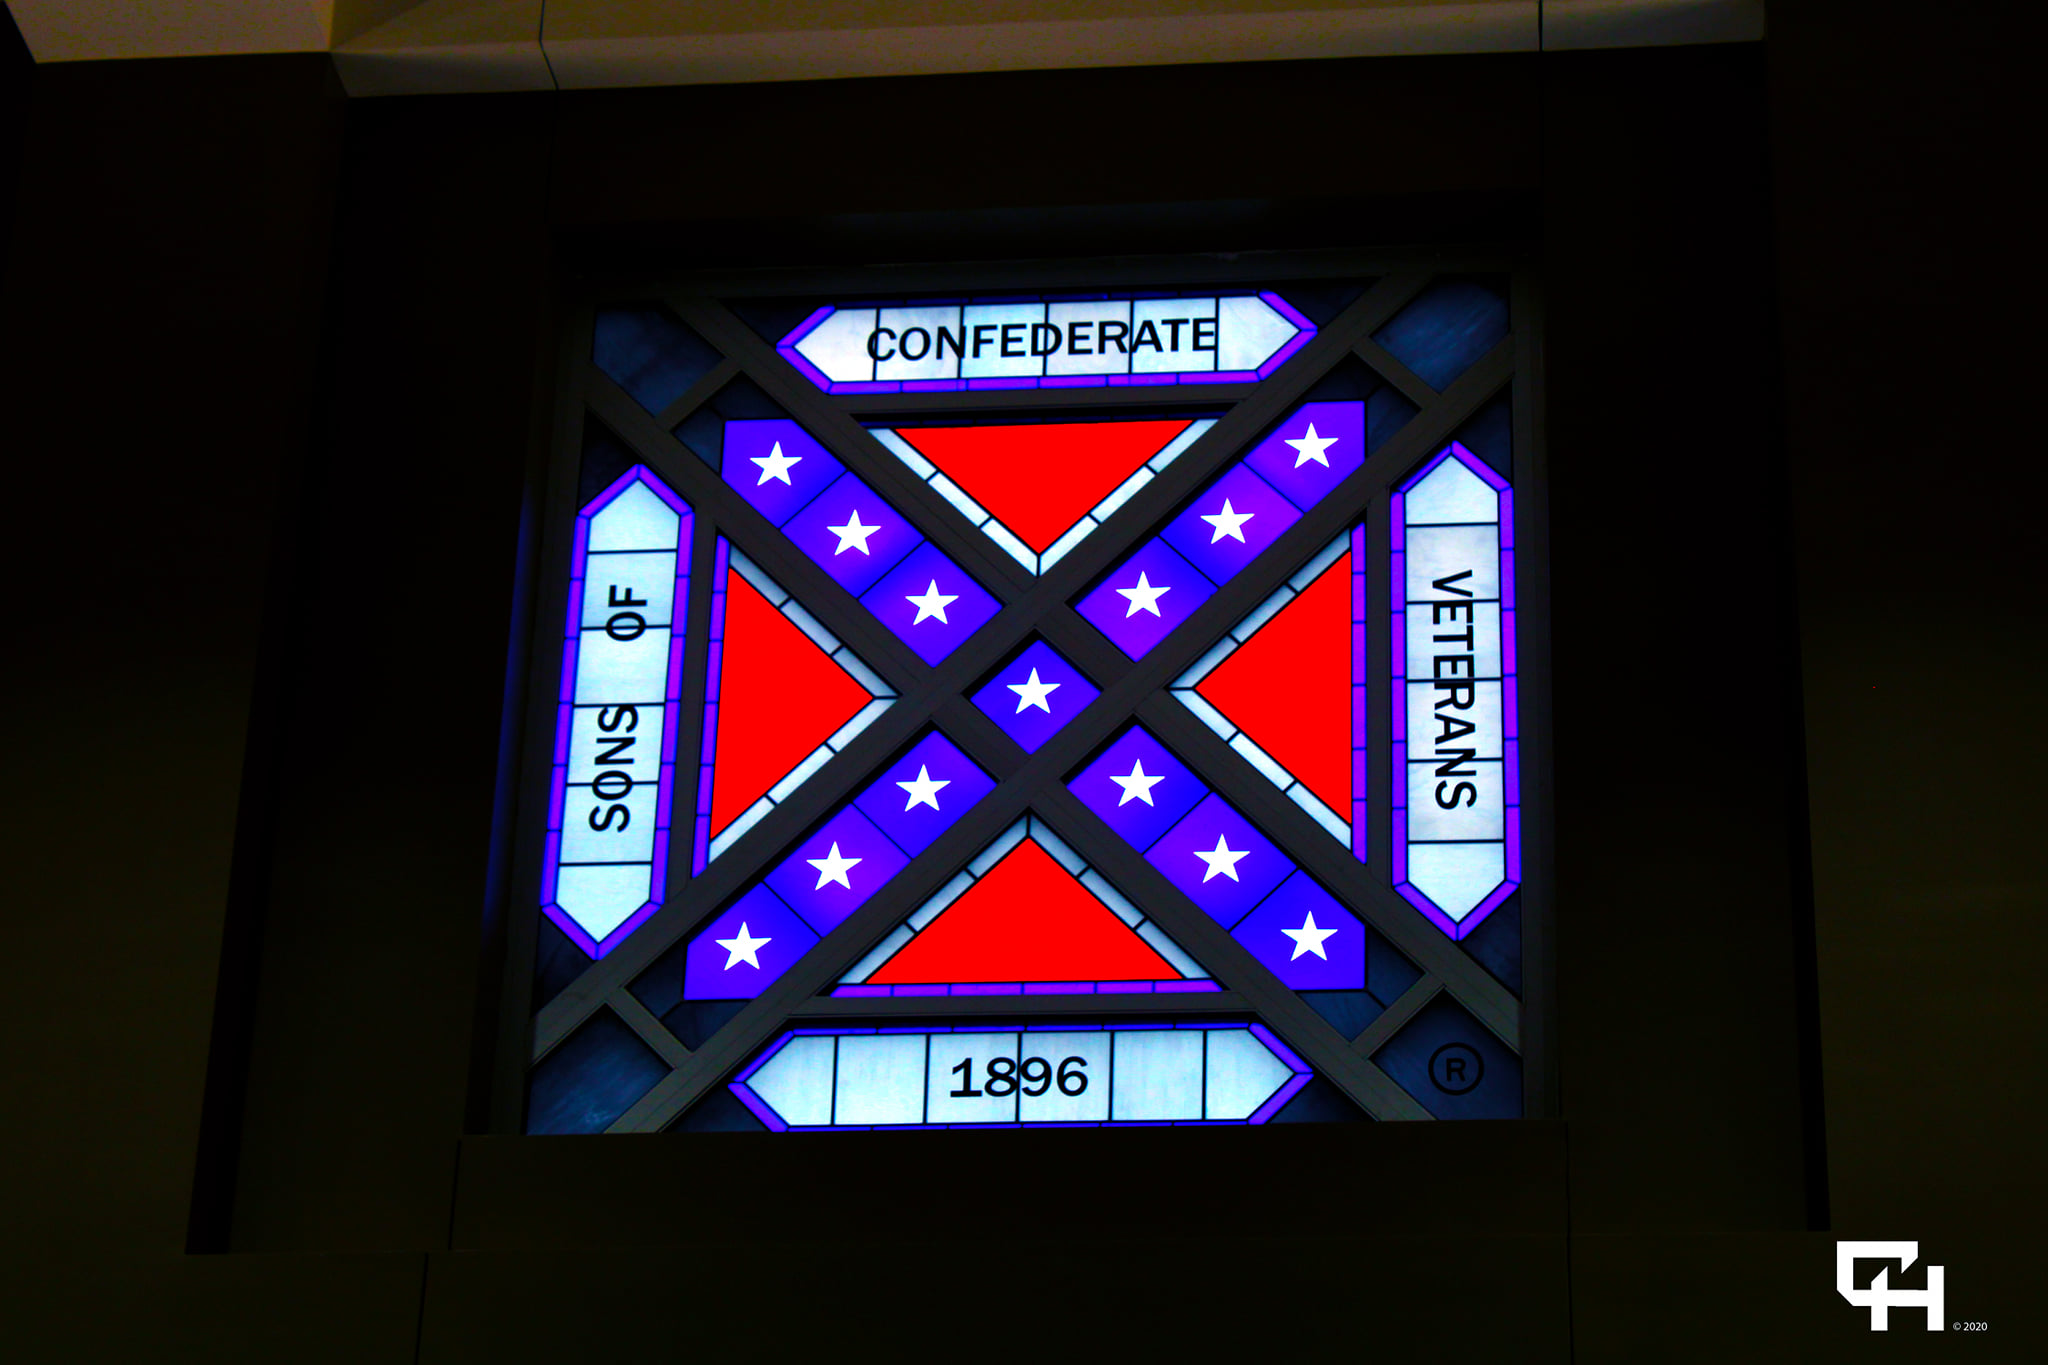 Sons of Confederate Logo Electric Sign Billboard